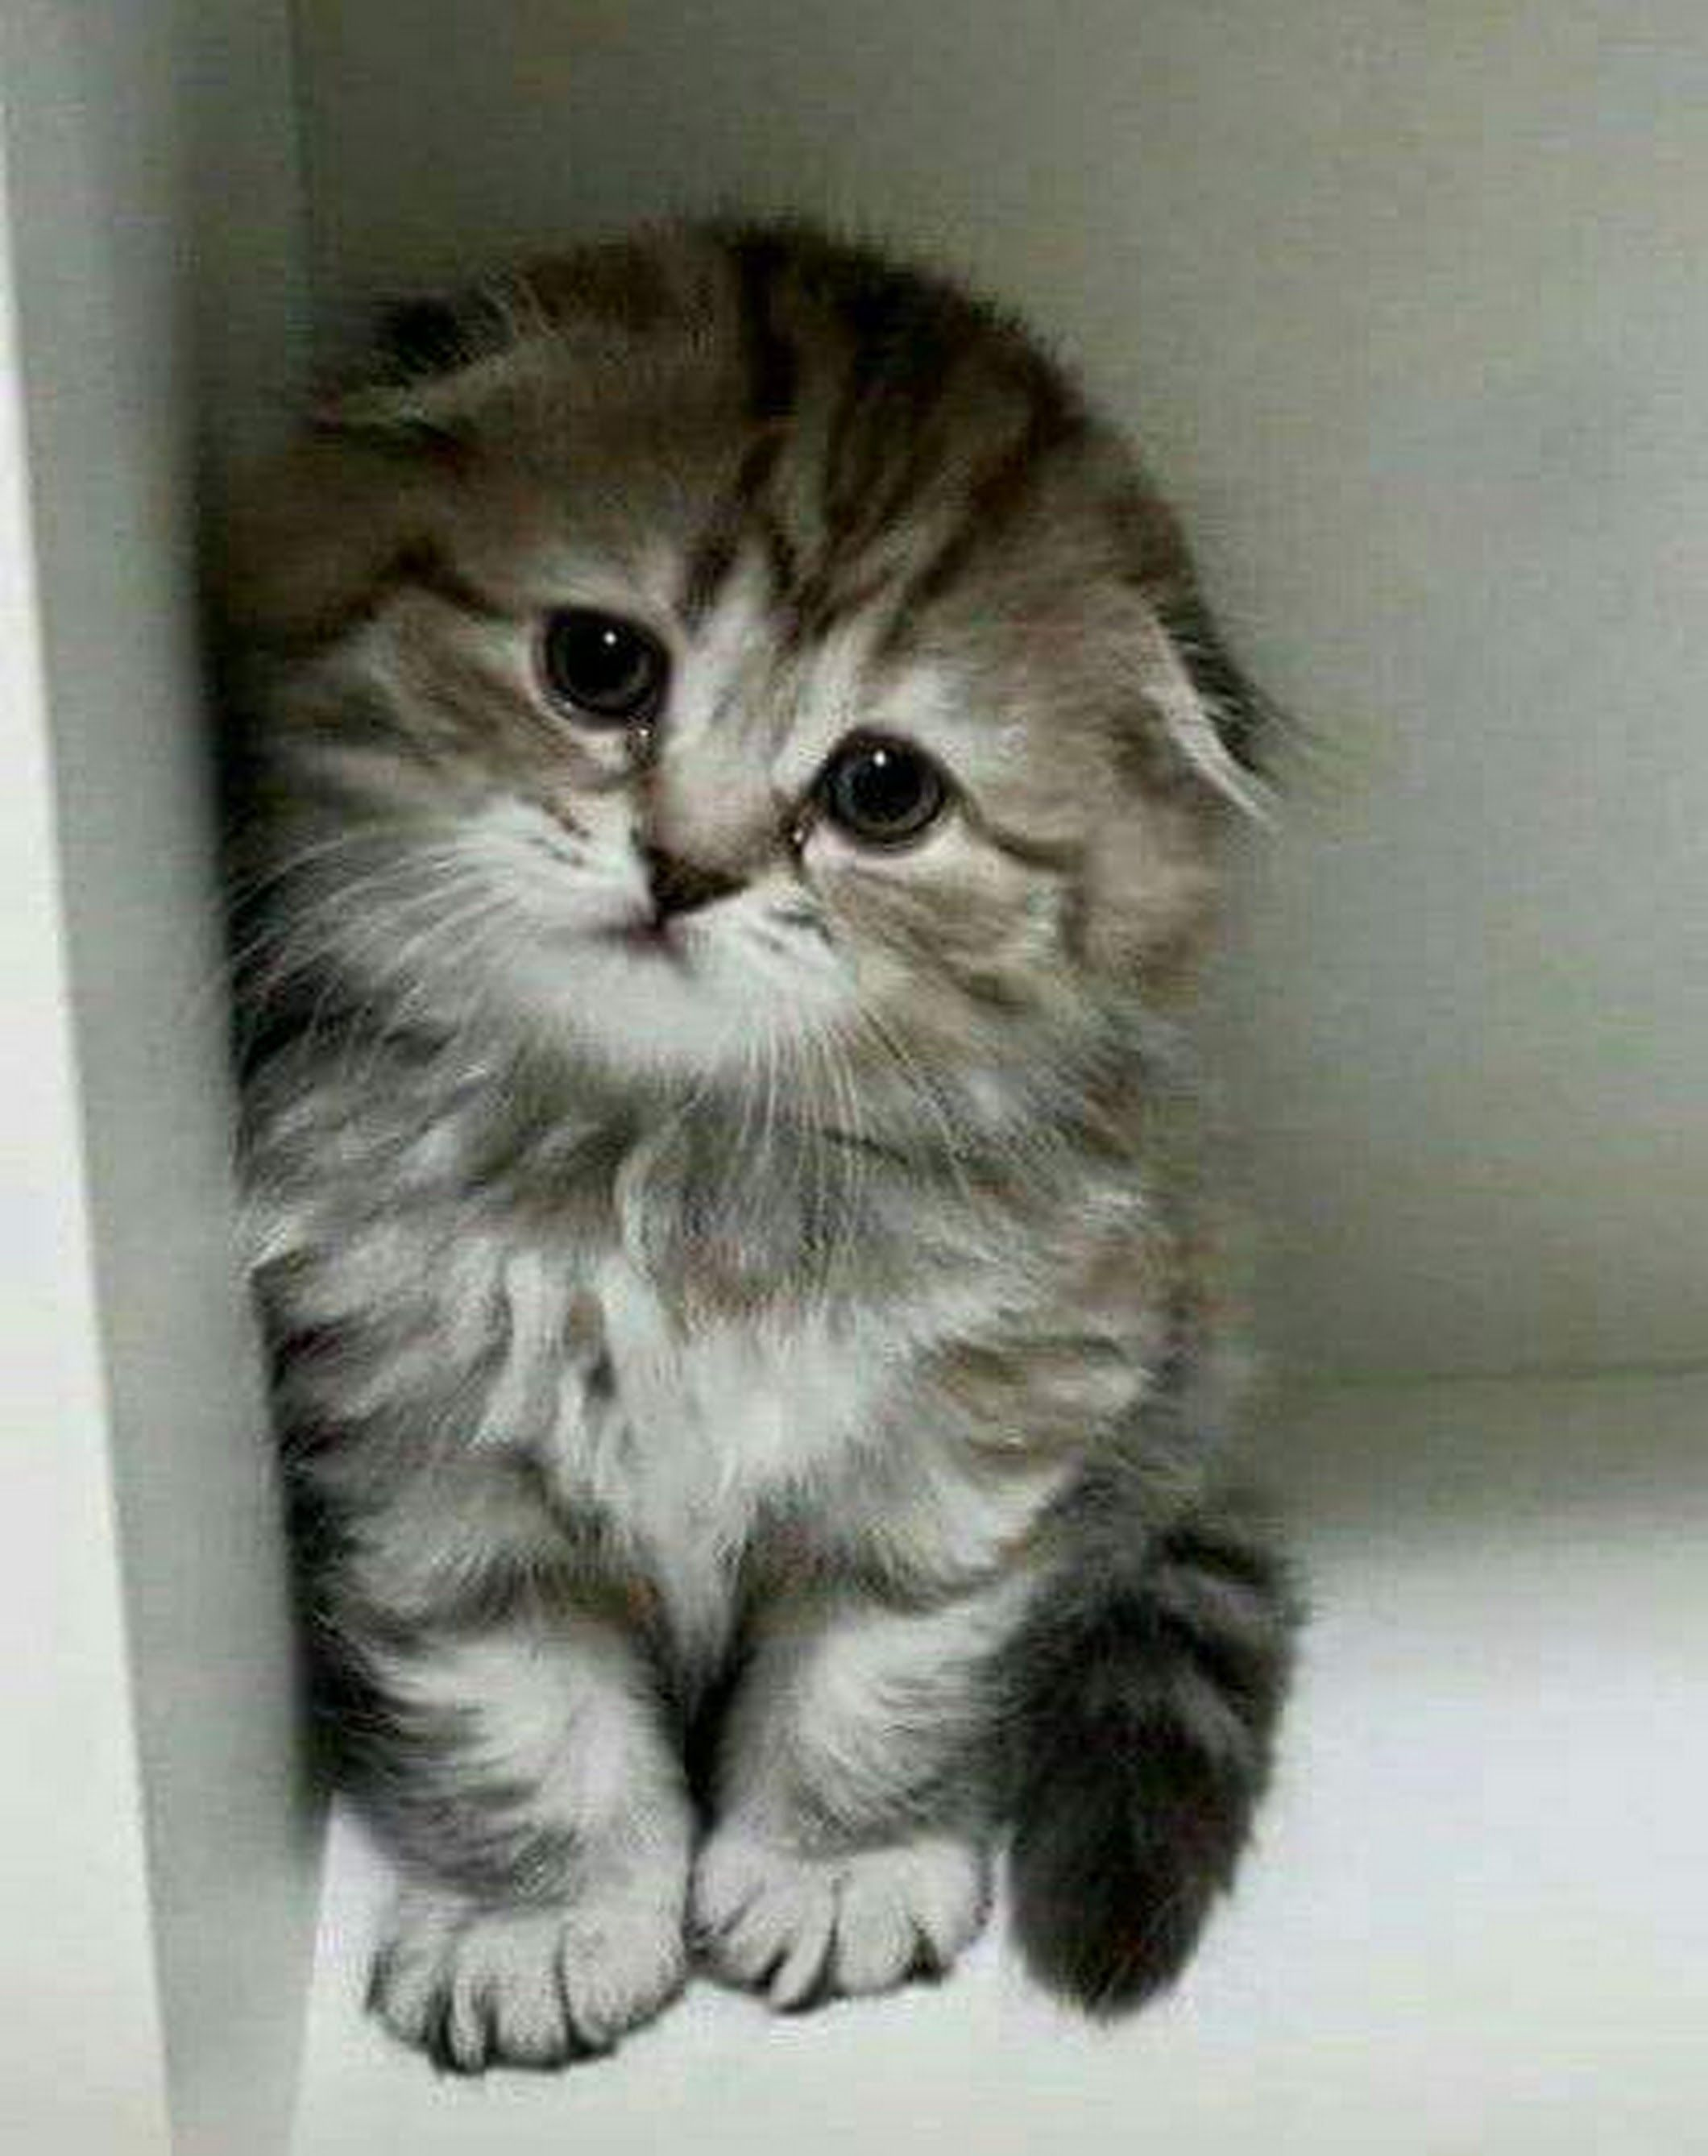 This Kittens Look Breaks My Heart Kittens Cutest Cute Baby Cats Cute Cats